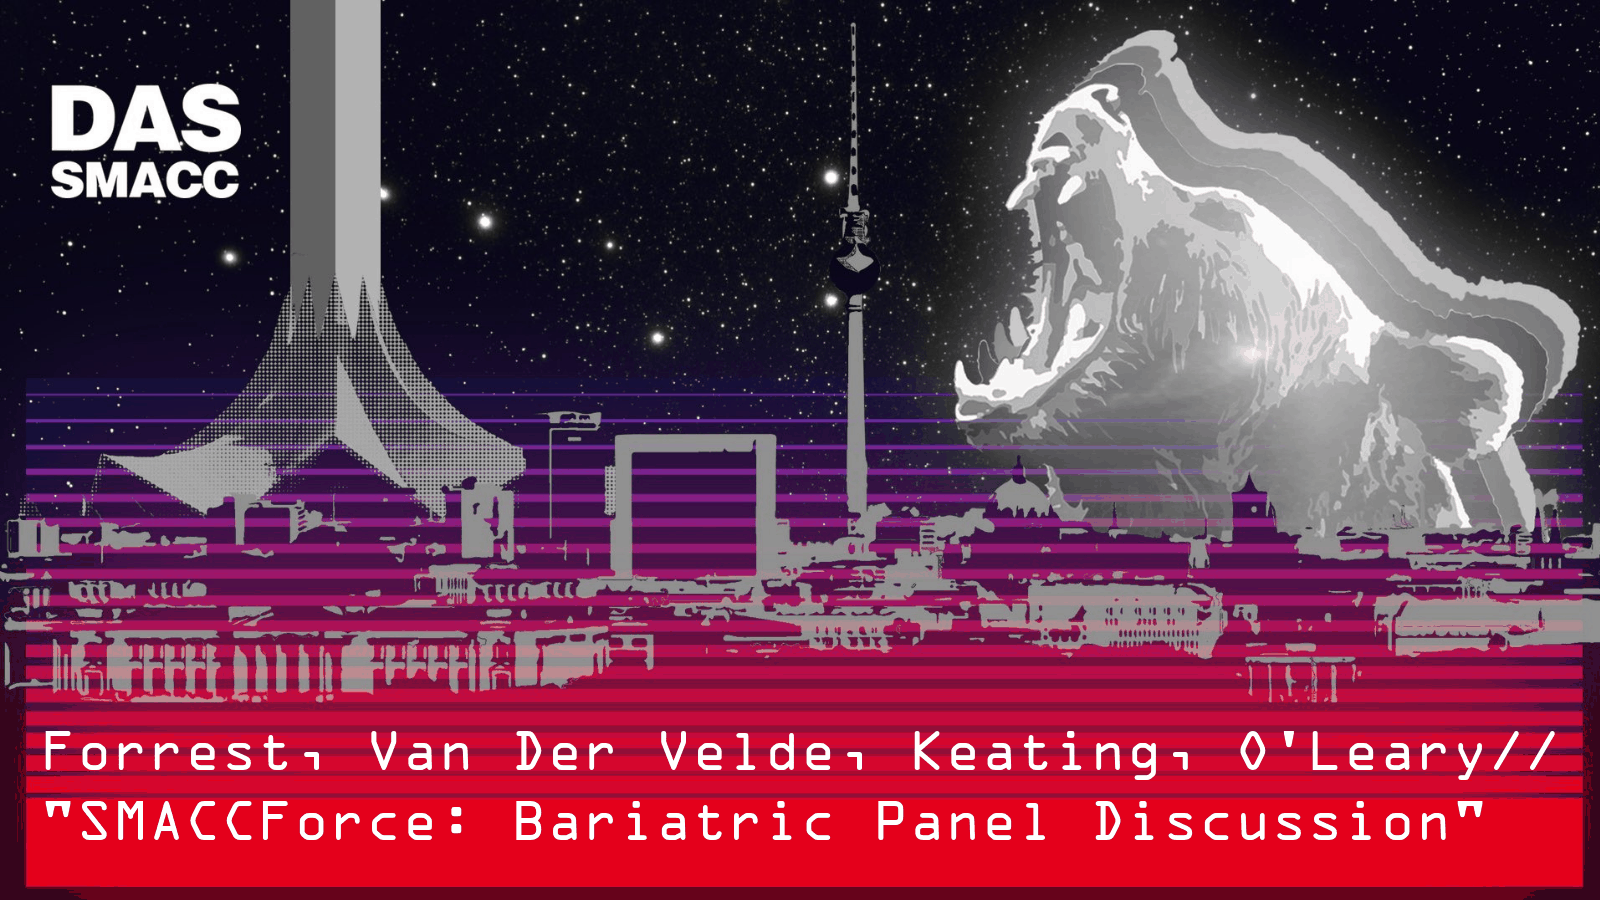 SMACCForce: Bariatric Panel Discussion